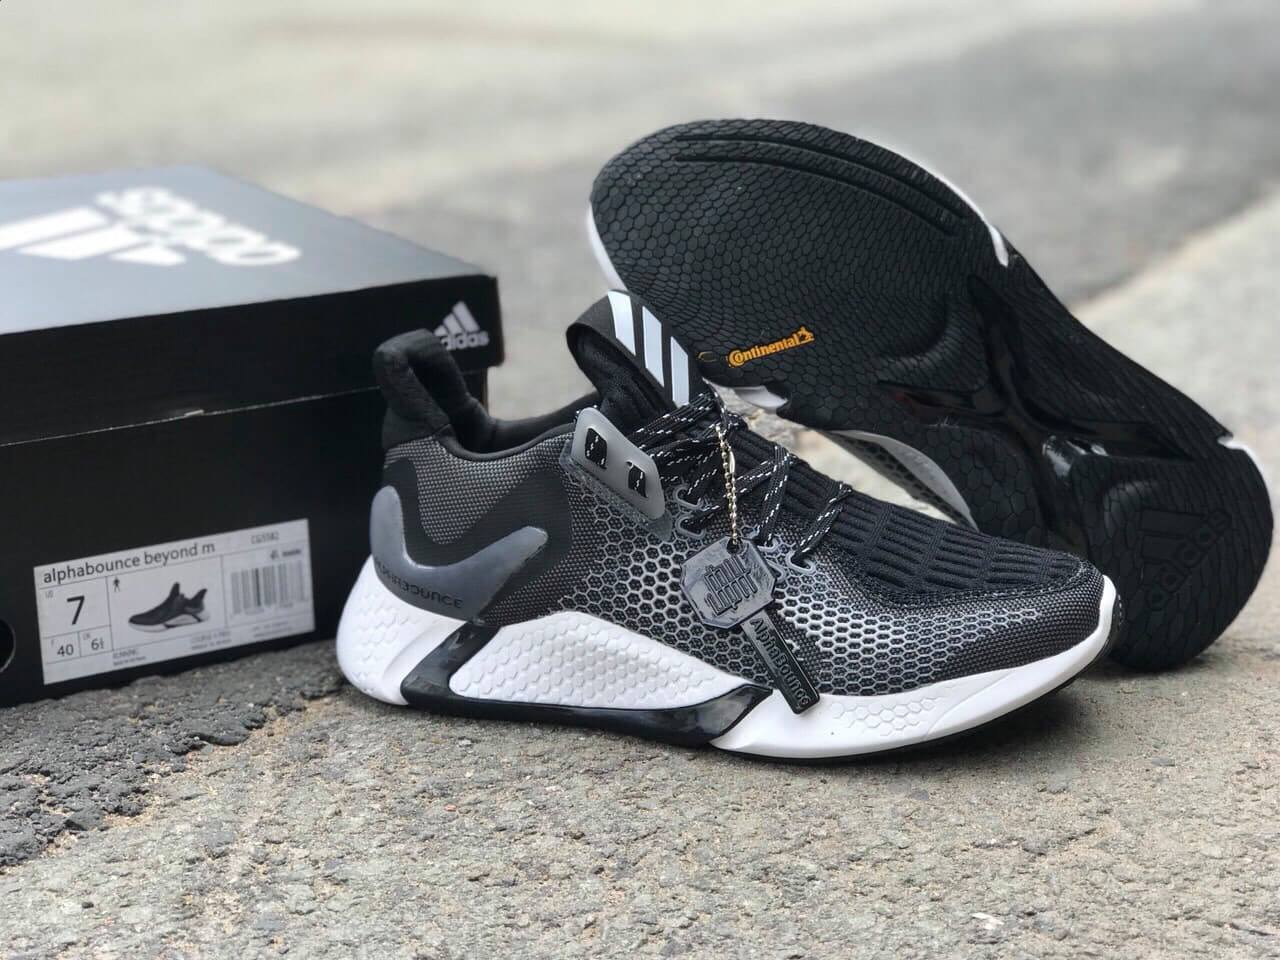 Alphabounce Beyond X New color